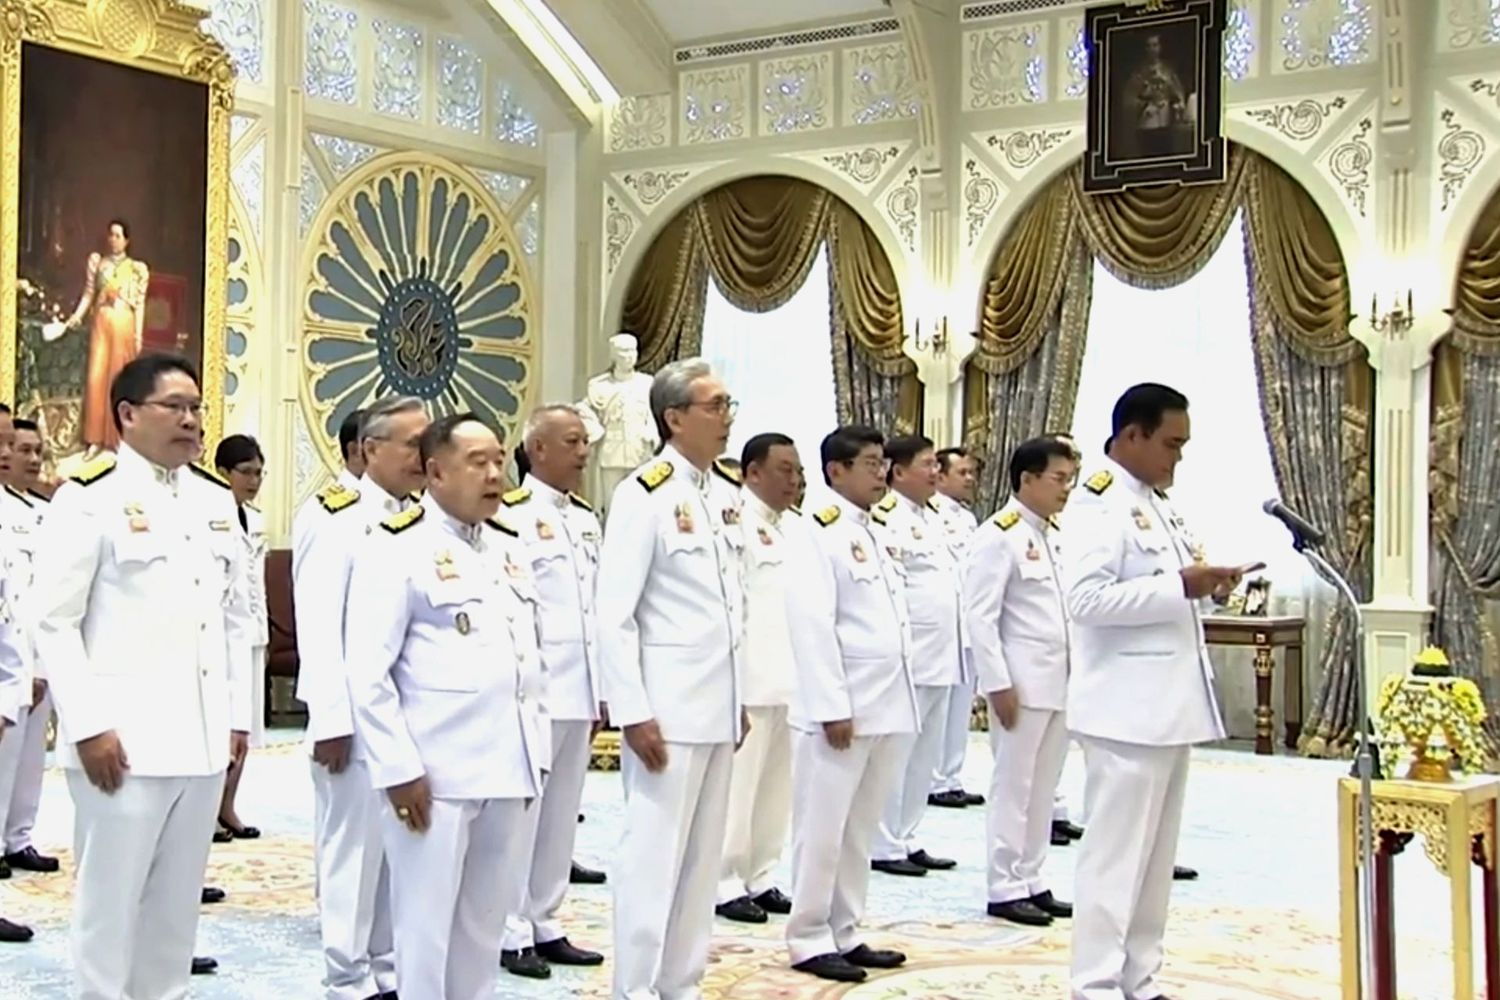 Prime Minister Prayut Chan-o-cha leads cabinet ministers to swear an oath before Their Majesties at Dusit Throne on July 16. (Pool TV photo)